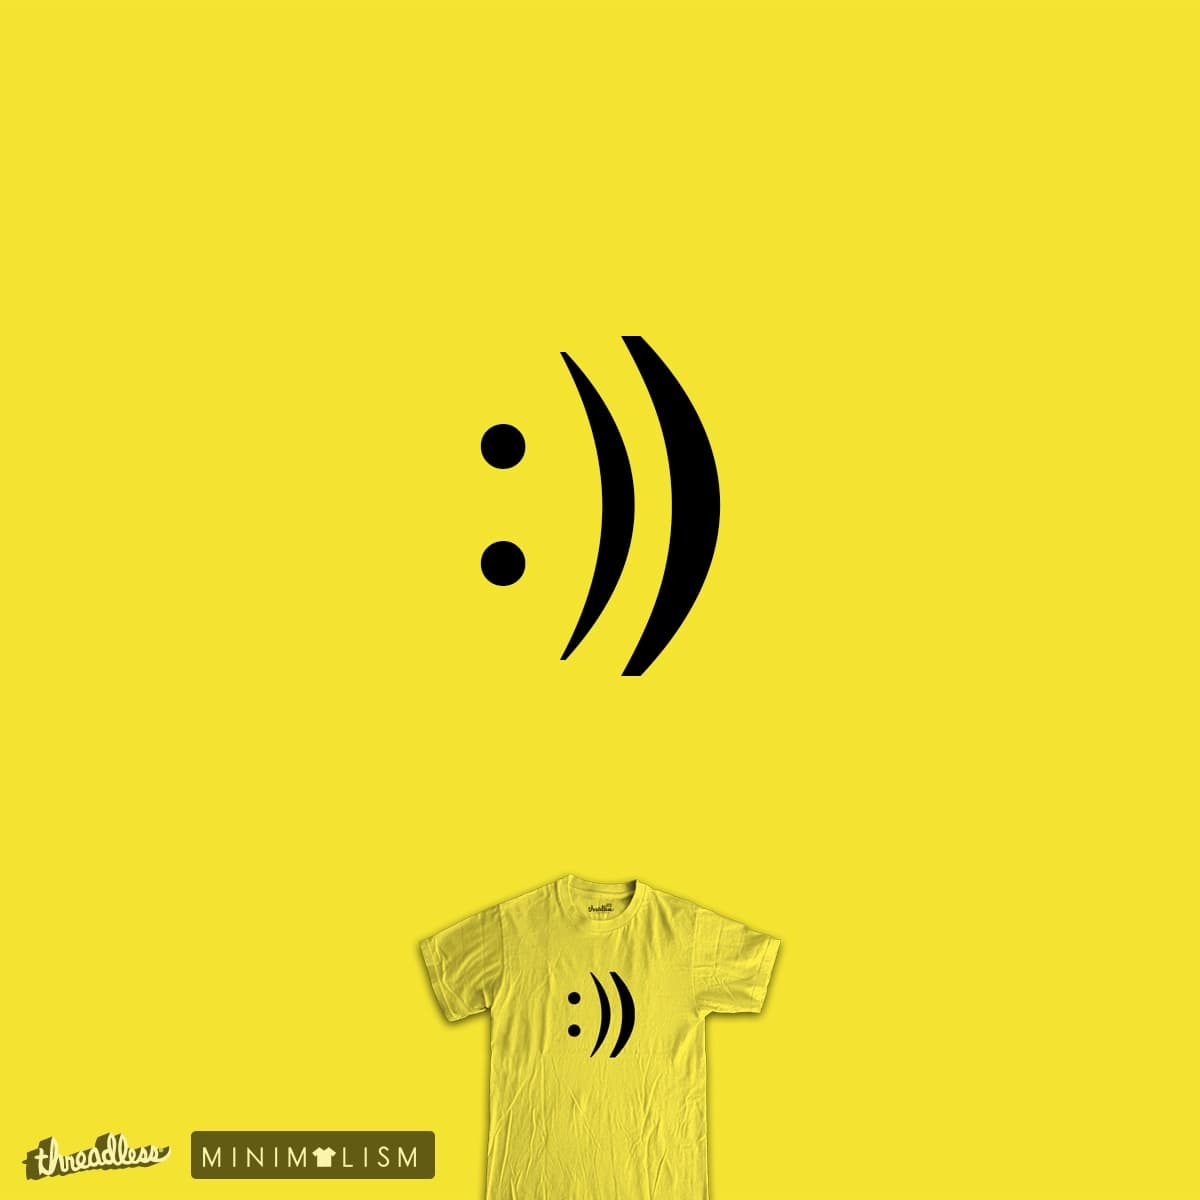 repeat the happiness by jerbing33 on Threadless